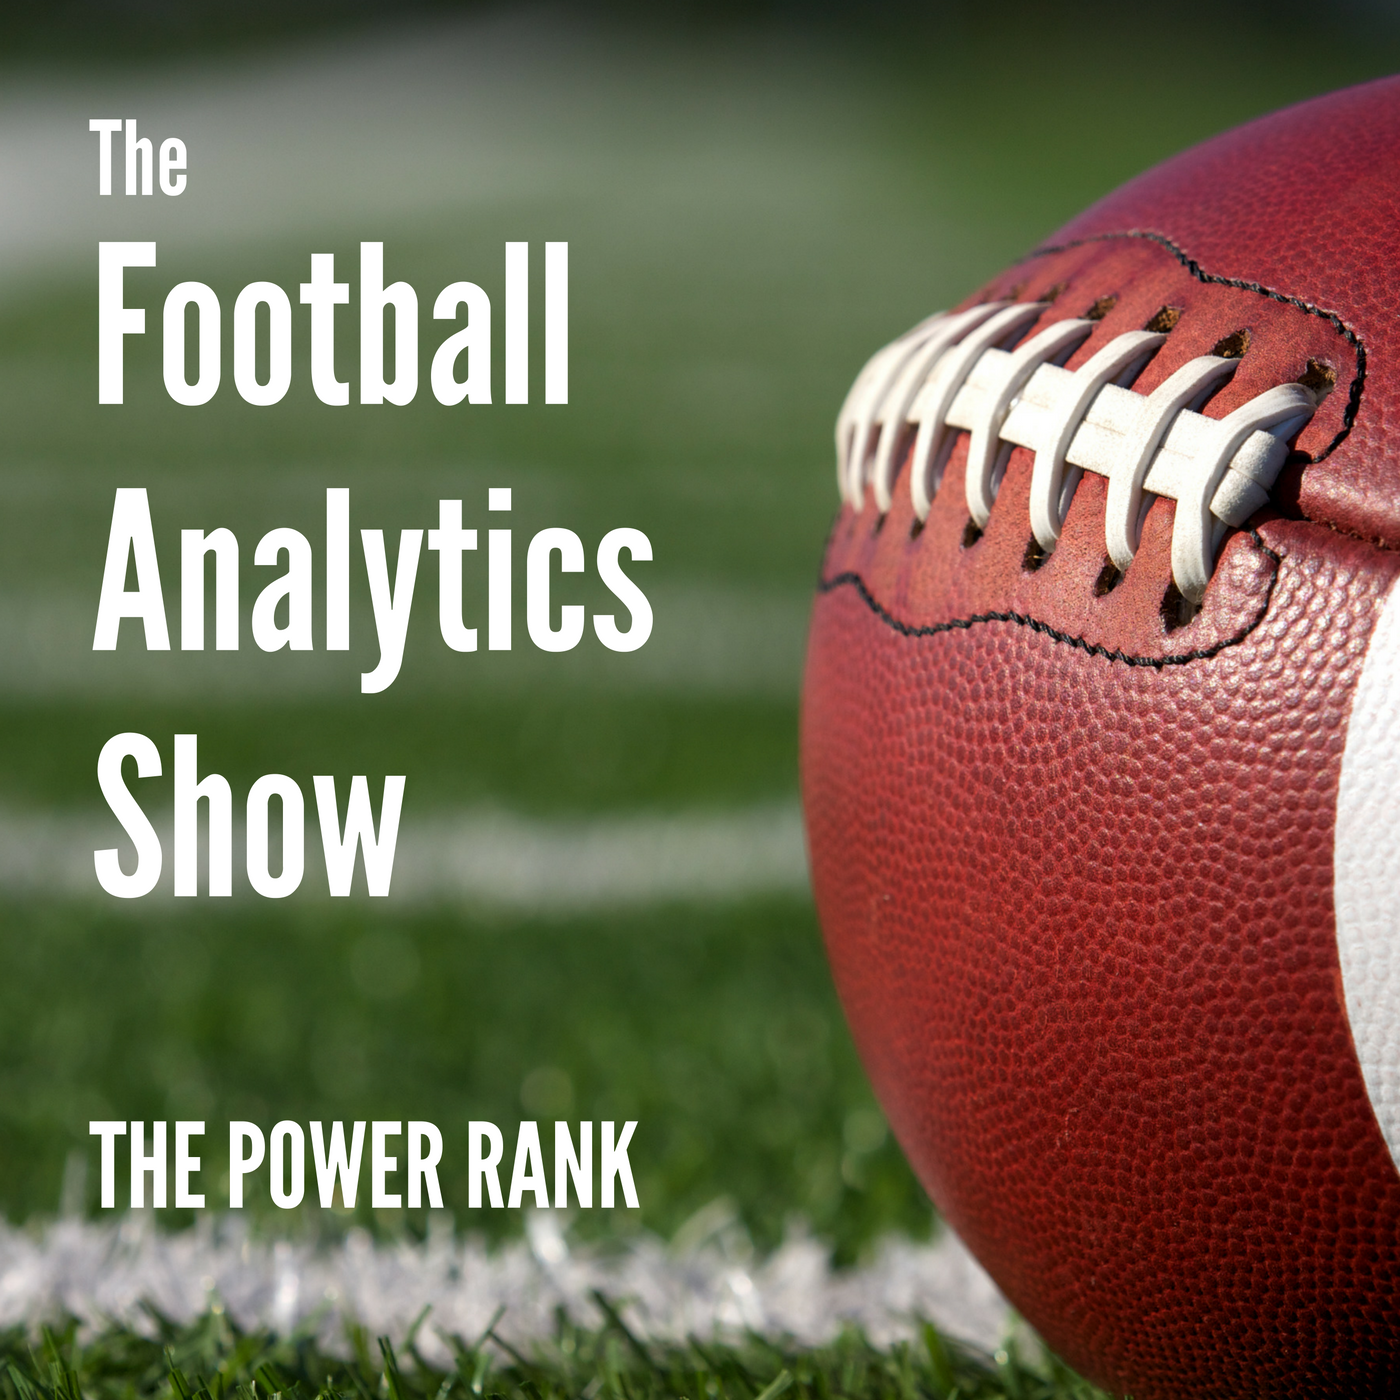 The Football Analytics Show by The Power Rank and Ed Feng on